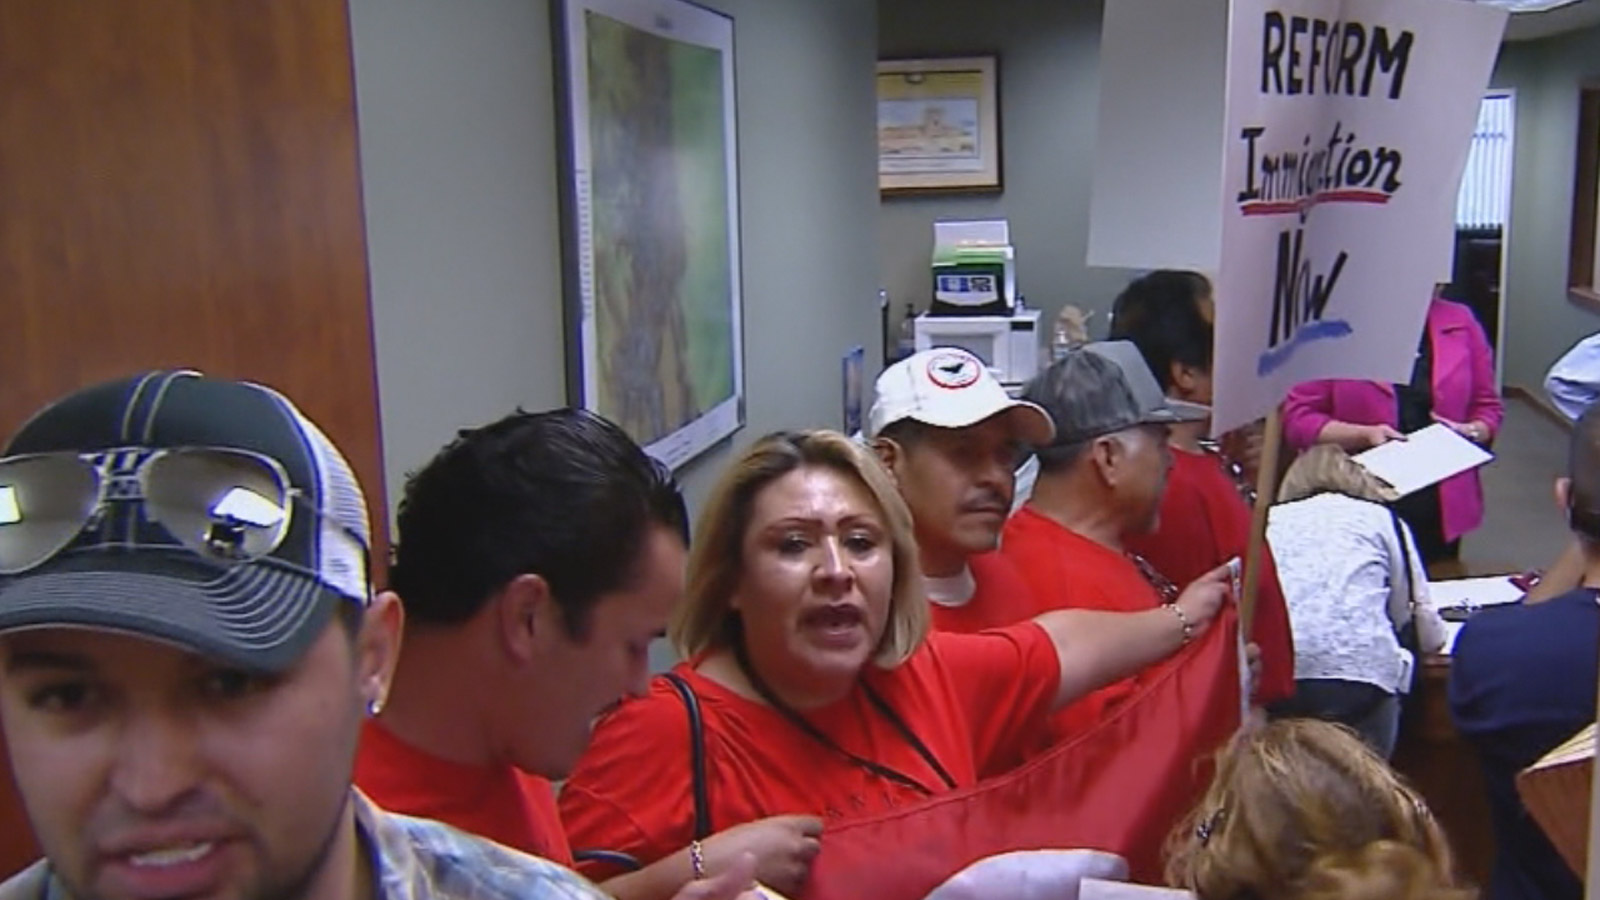 Protesters calling for immigration reform crowded Rep. Cory Gardner's office on Thursday (credit: CBS)